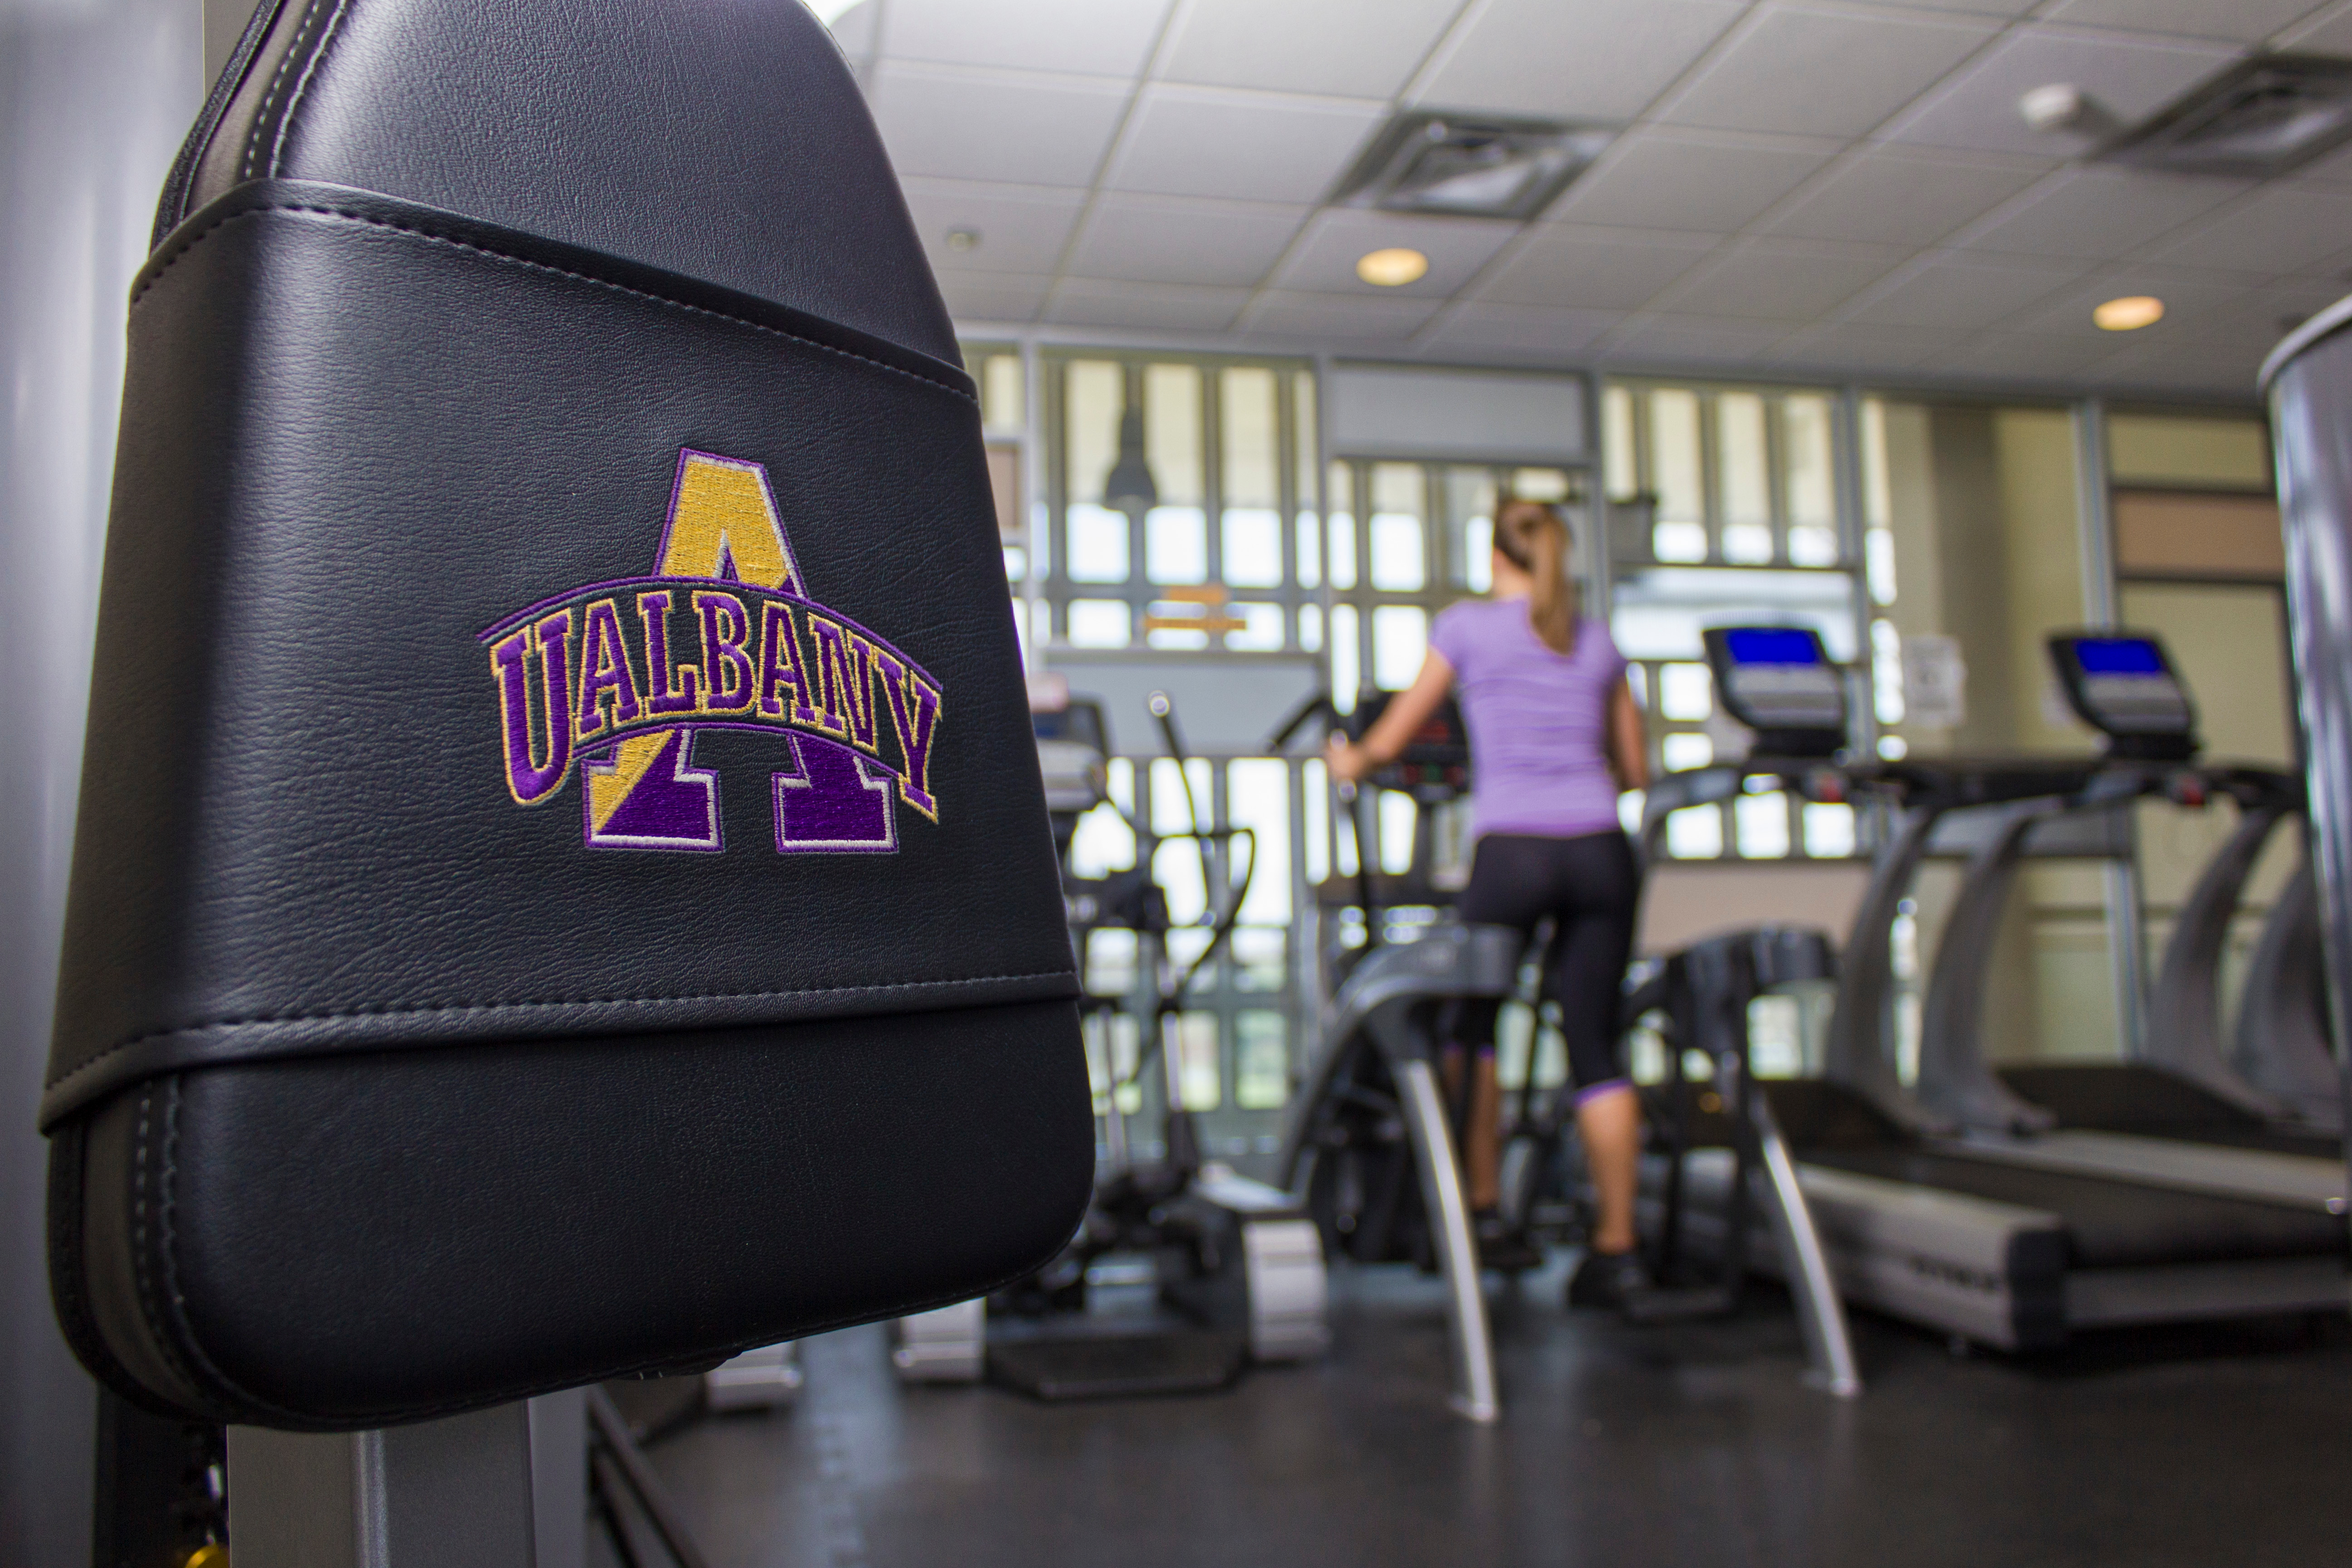 A student uses an elliptical machine inside a fitness center